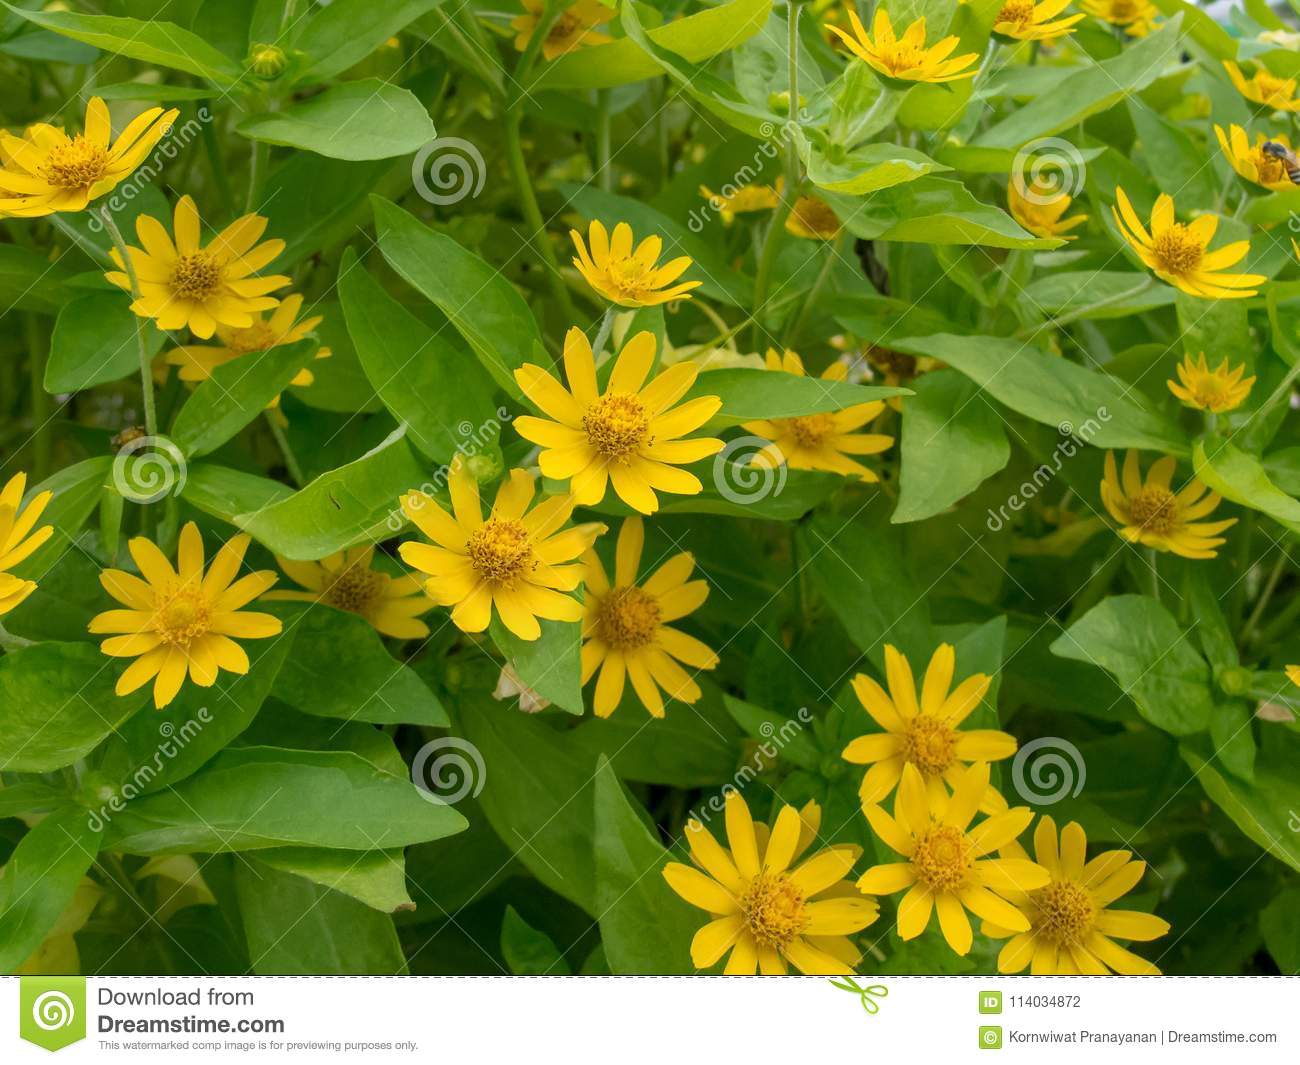 Little yellow star flowers on green leafs background stock photo download little yellow star flowers on green leafs background stock photo image of flowersn mightylinksfo